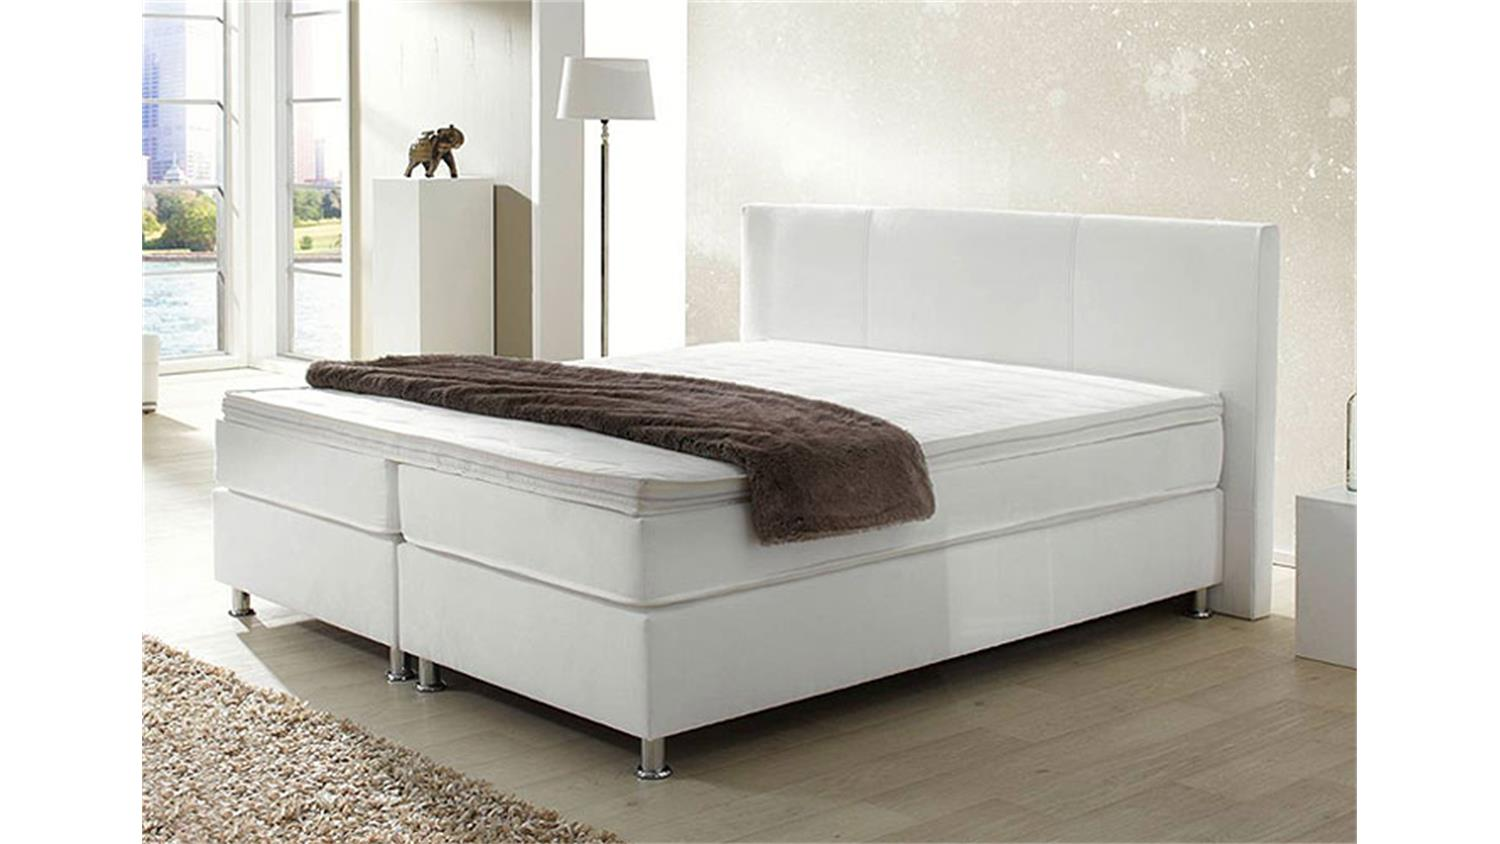 bett hyper boxspring in wei 180x200 m federkernmatratze. Black Bedroom Furniture Sets. Home Design Ideas